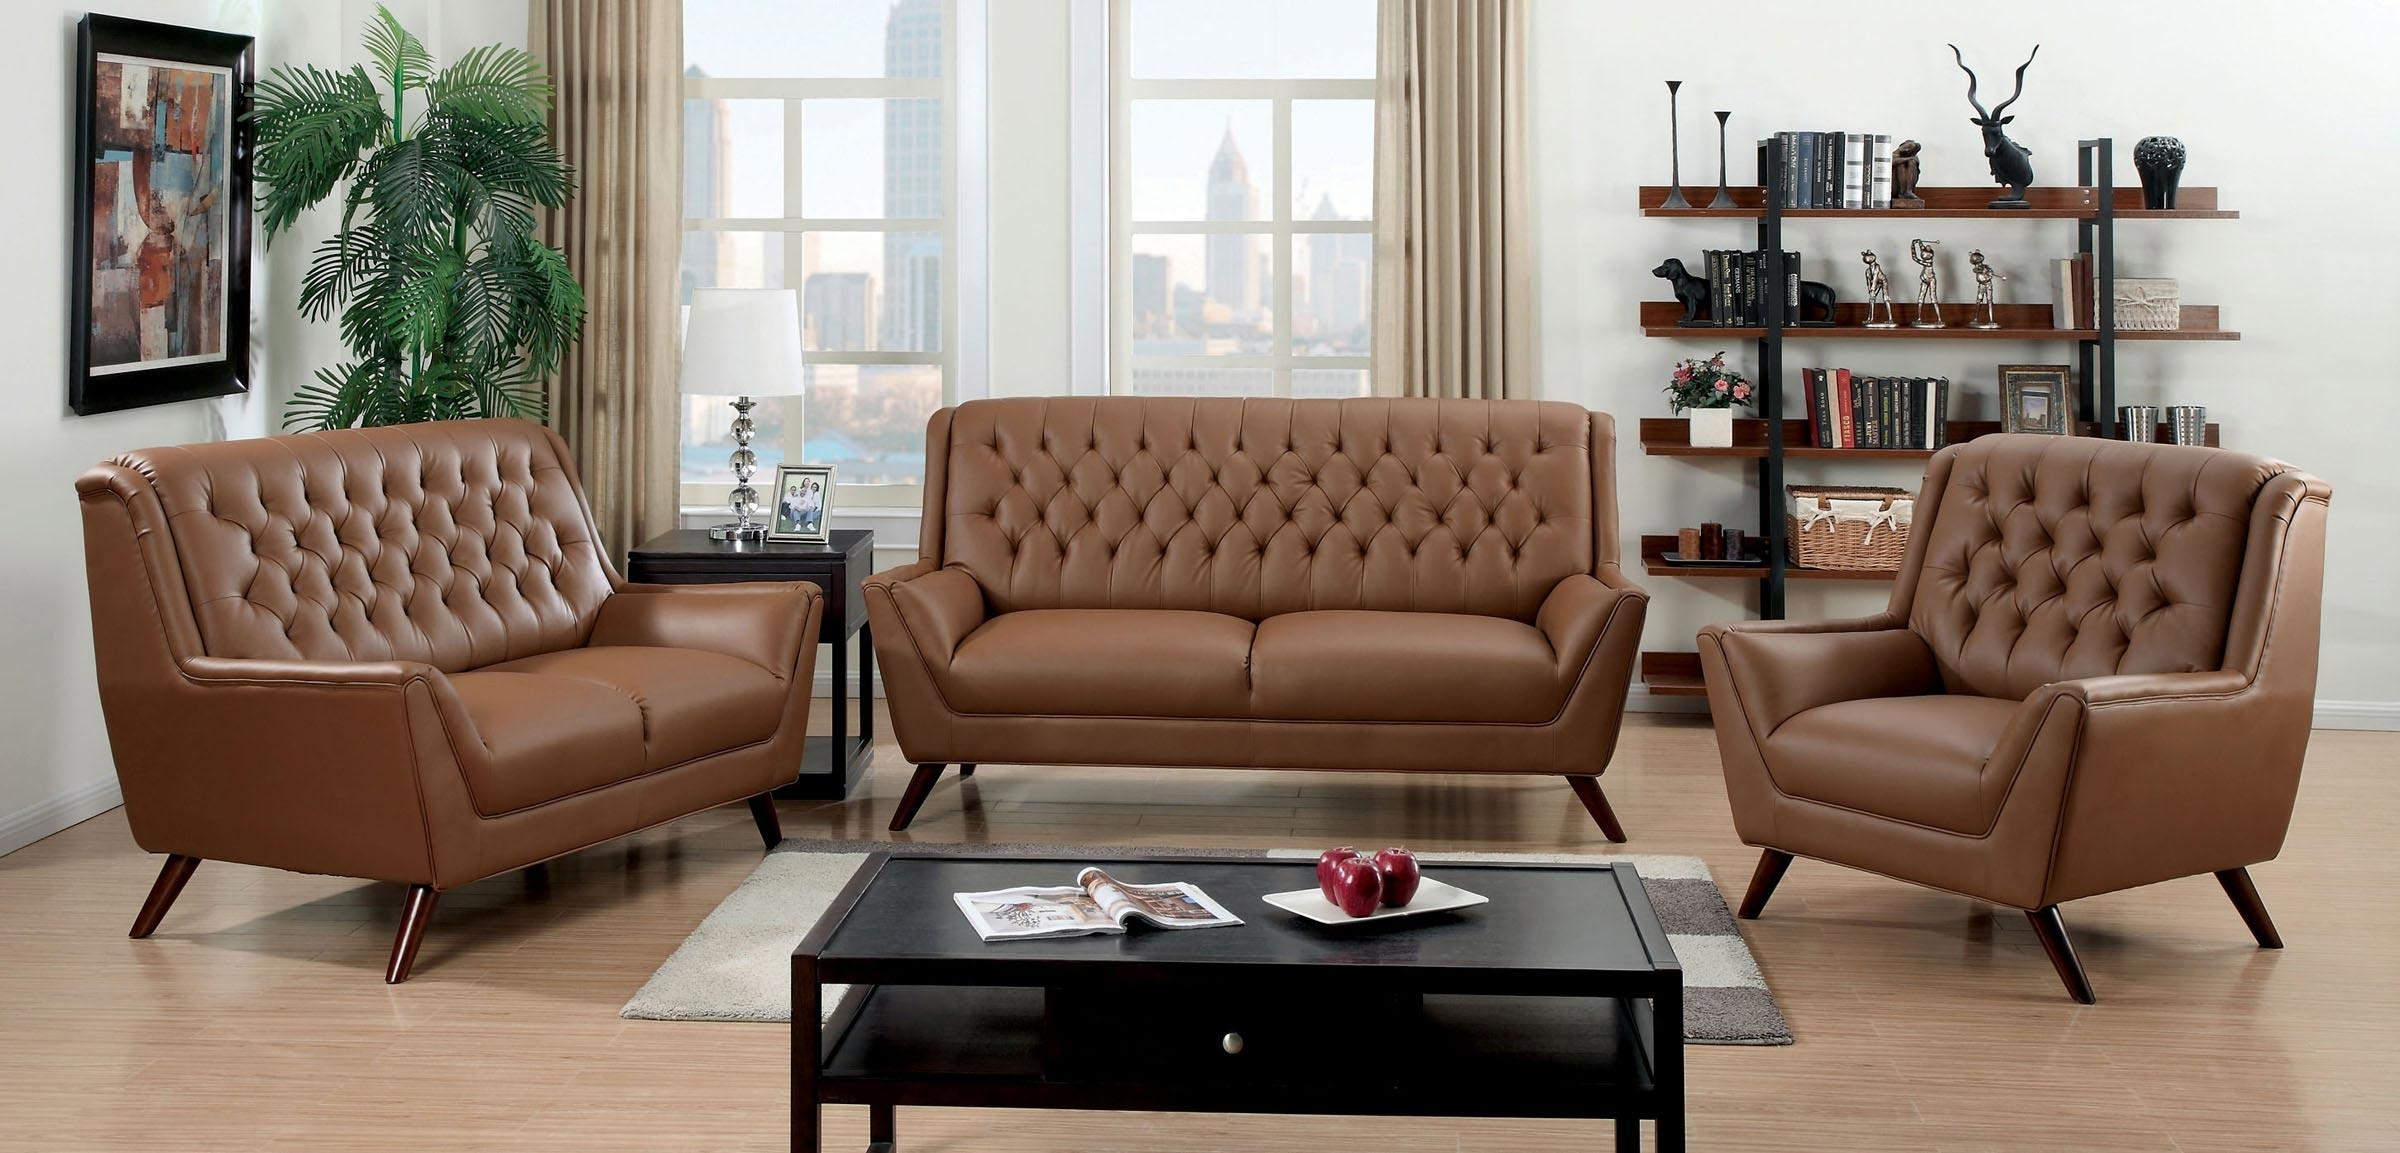 Furniture Home: Italian Navy Leather Tufted Sofa Second Hand With Brown Tufted Sofas (Image 9 of 20)